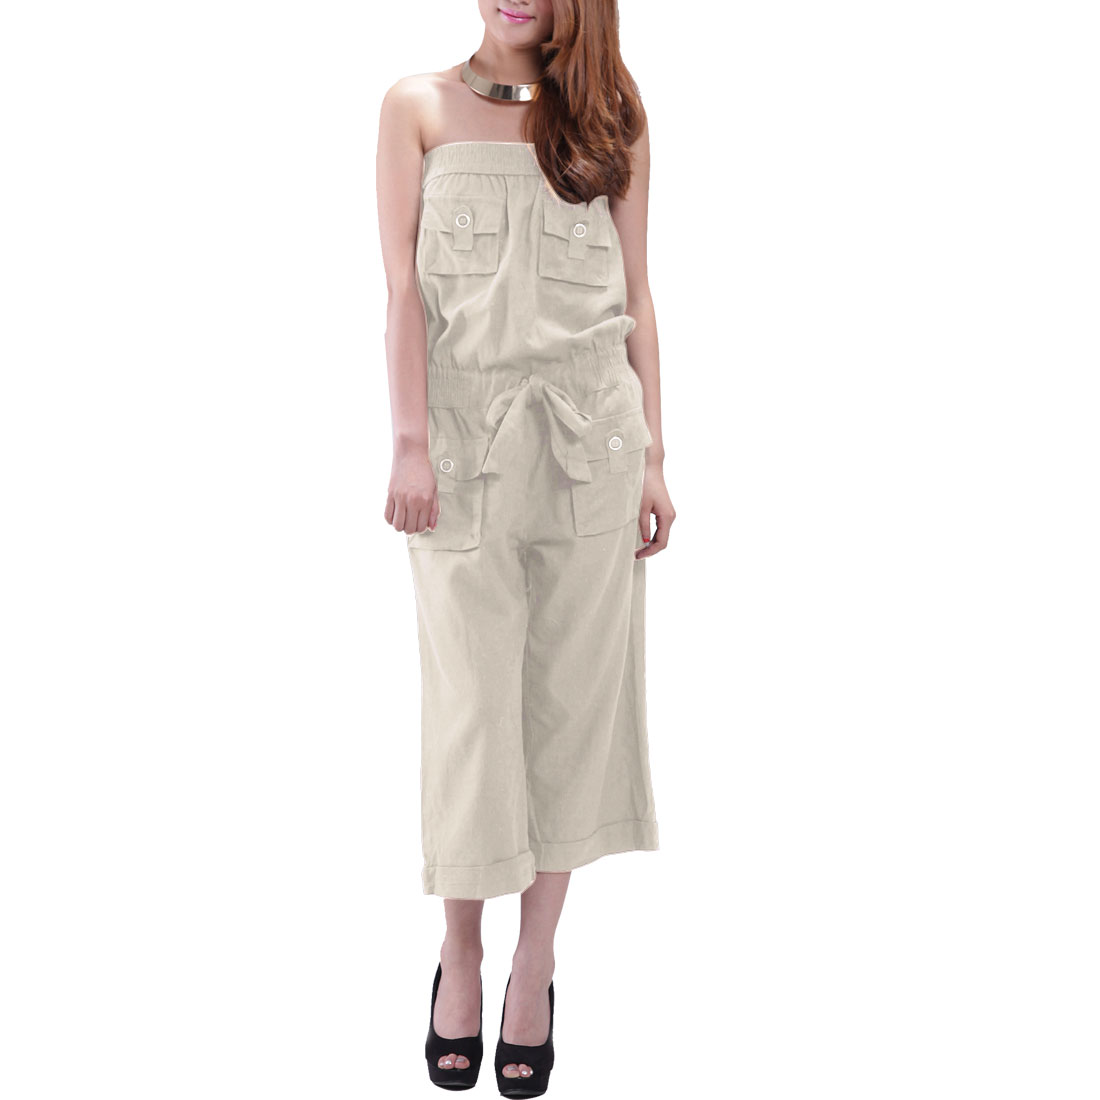 Vertical Pockets Stretchy Waist Tube Jumpsuit Beige XS for Ladies